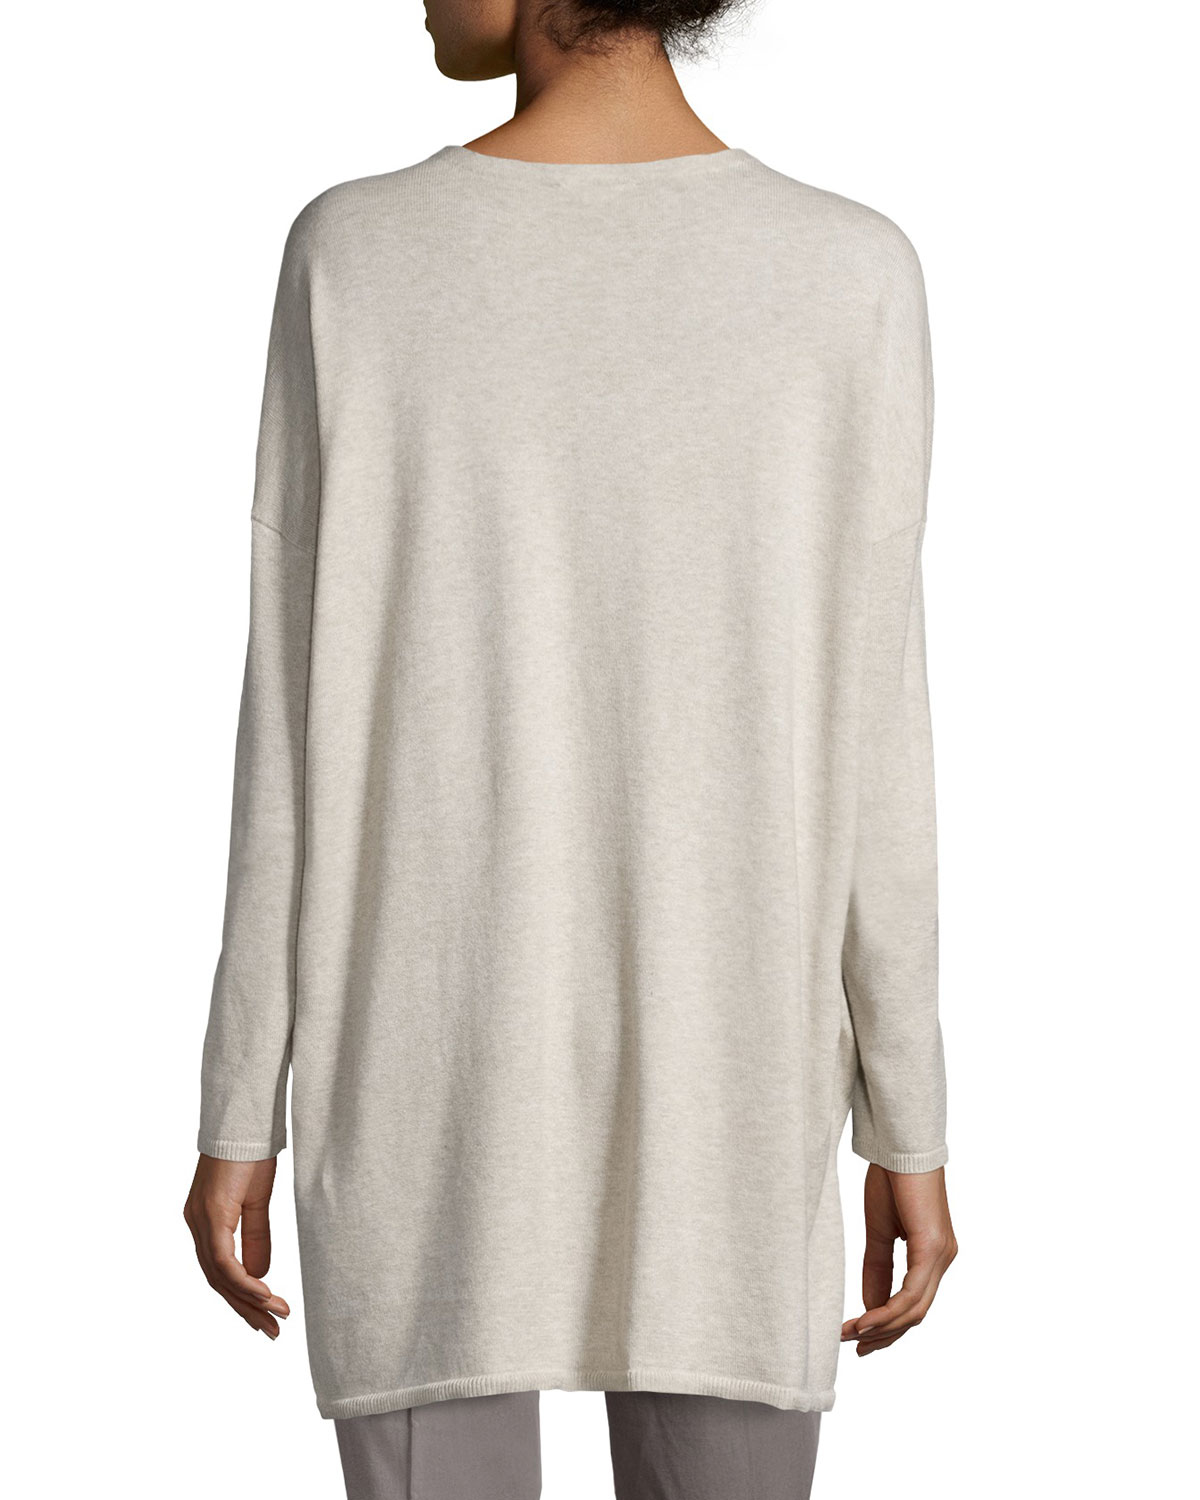 Eileen fisher V-neck Organic Cotton Tunic With Pockets in White | Lyst